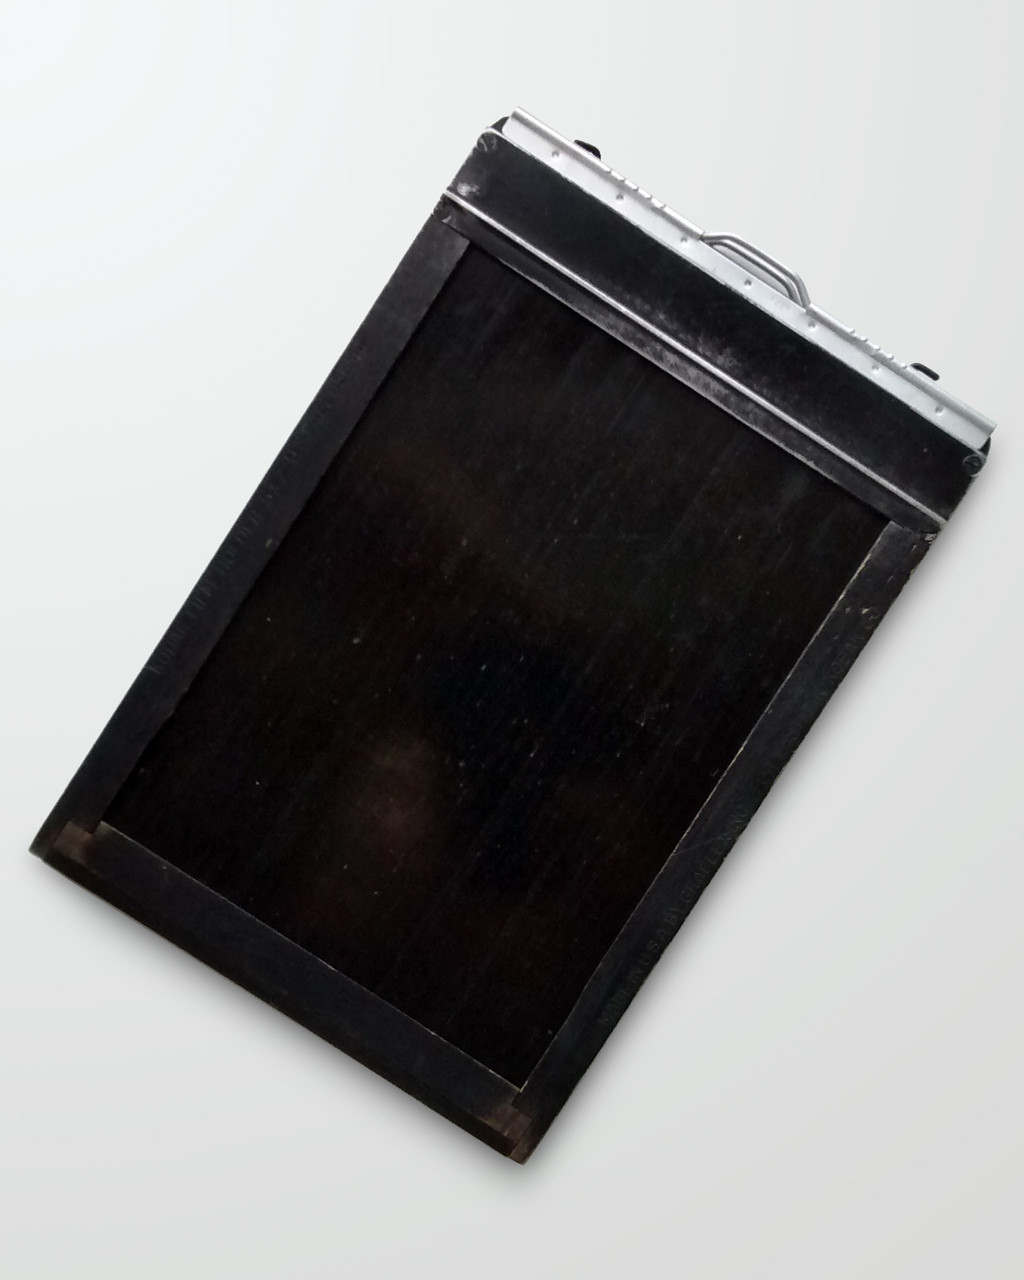 Sheet Film Holder 5x7 Inch Sheet Film Holder